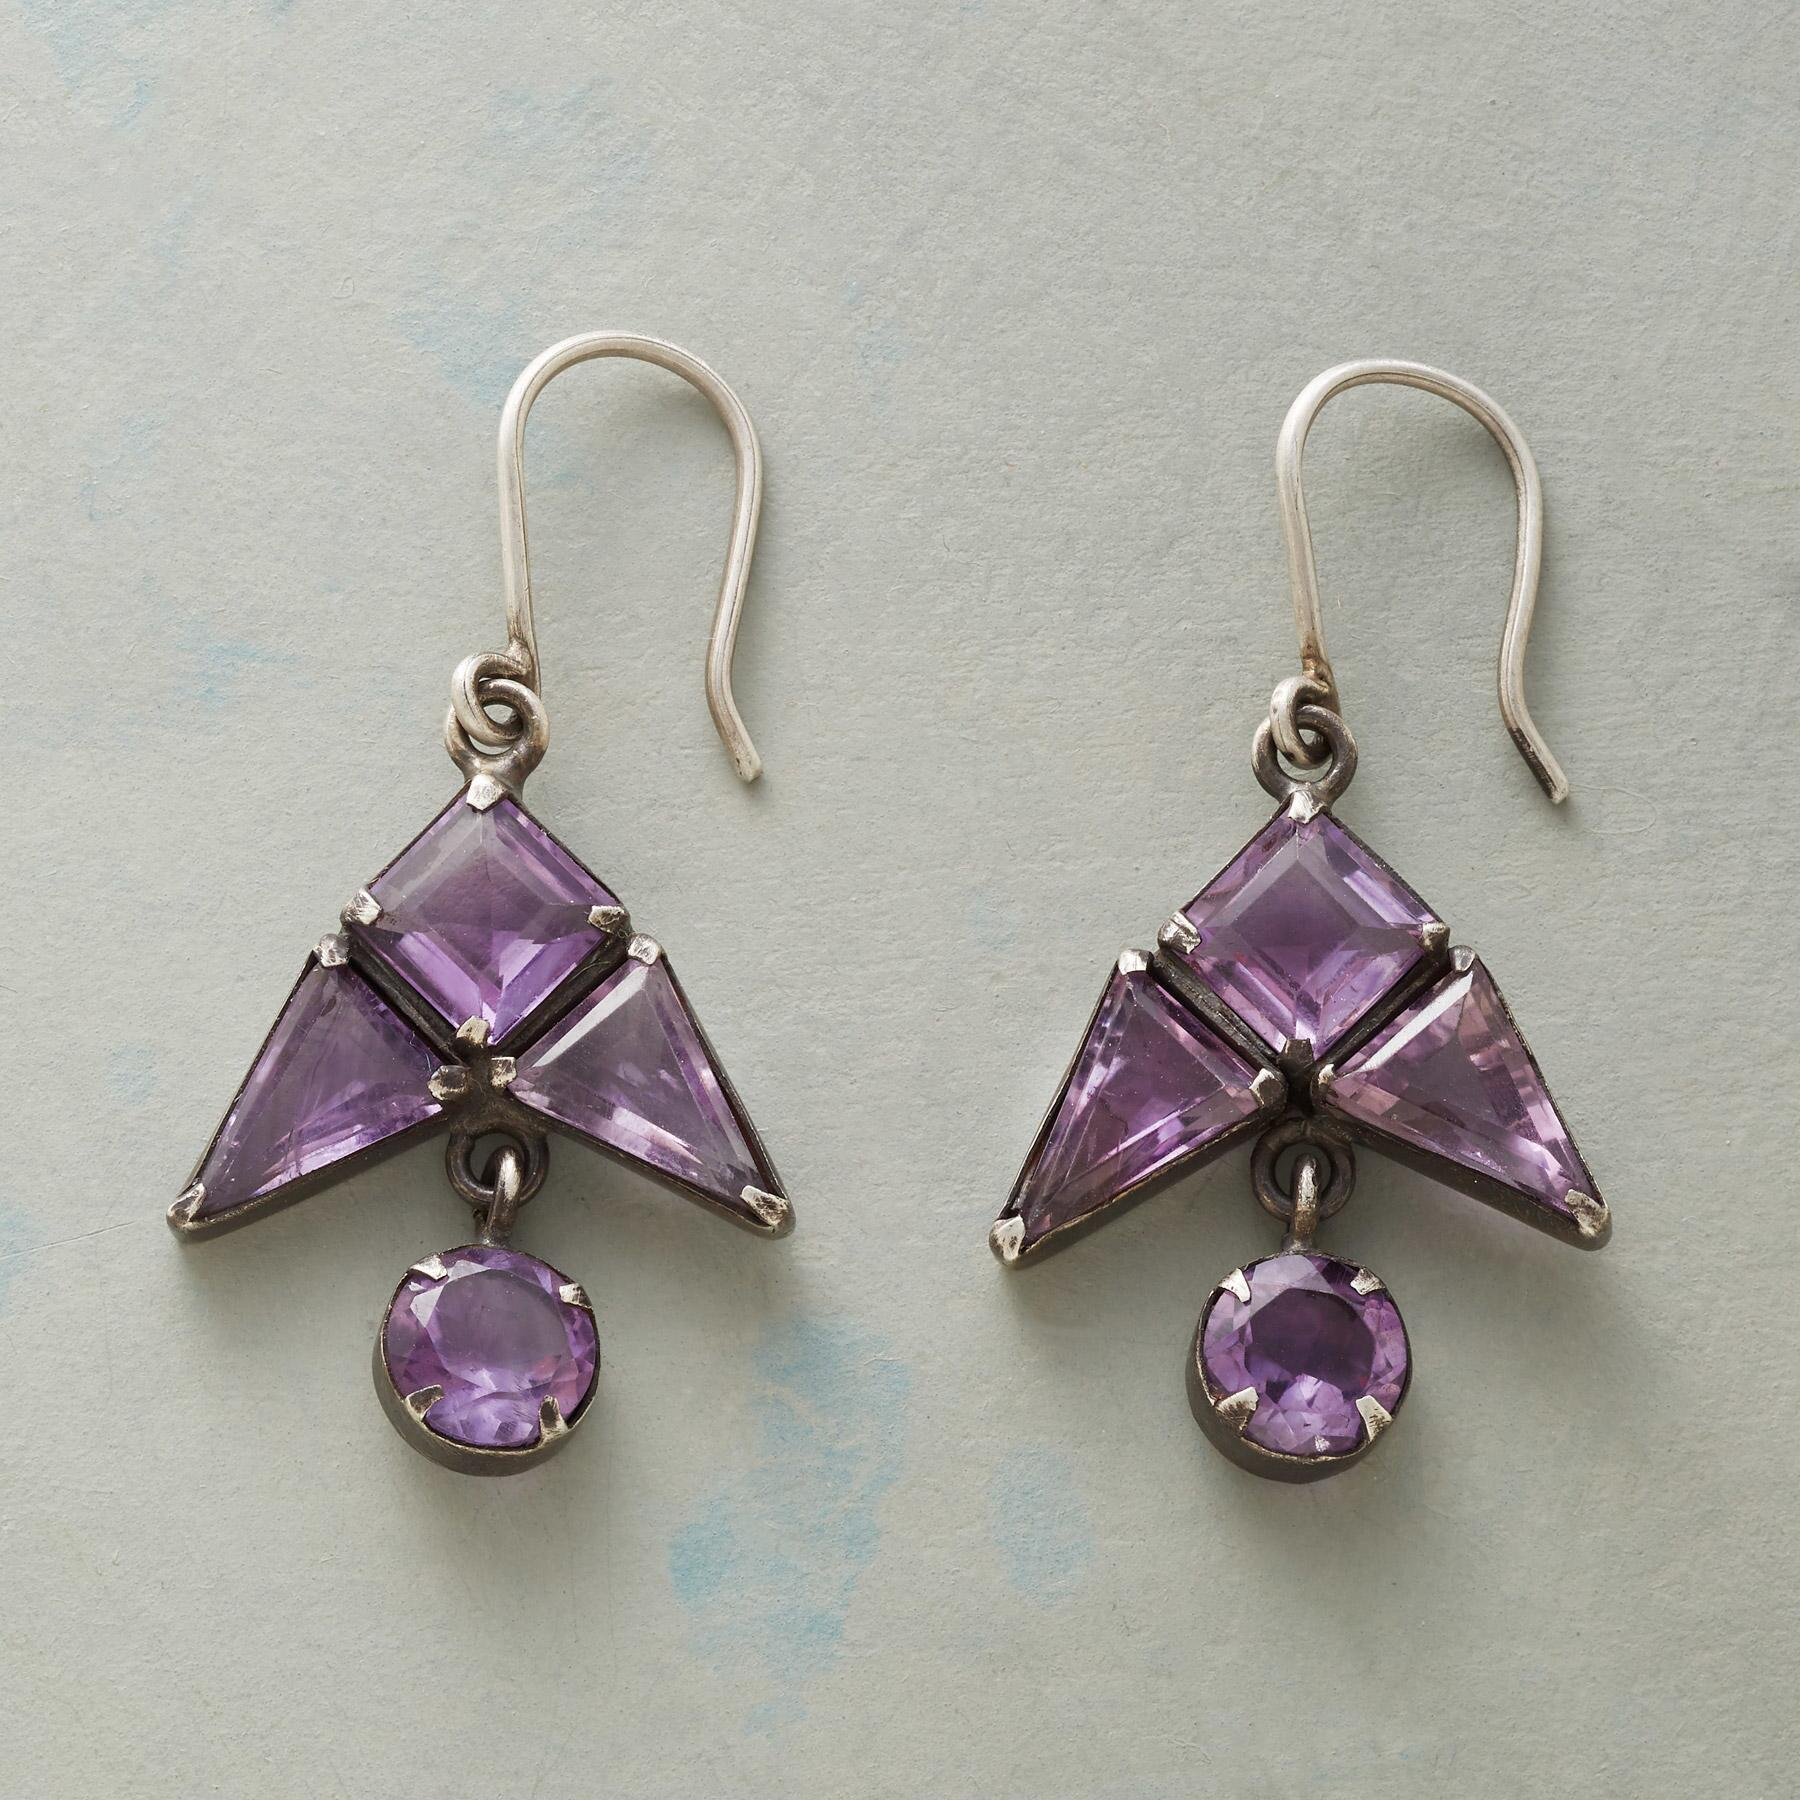 PERFECT PUZZLE EARRINGS: View 1